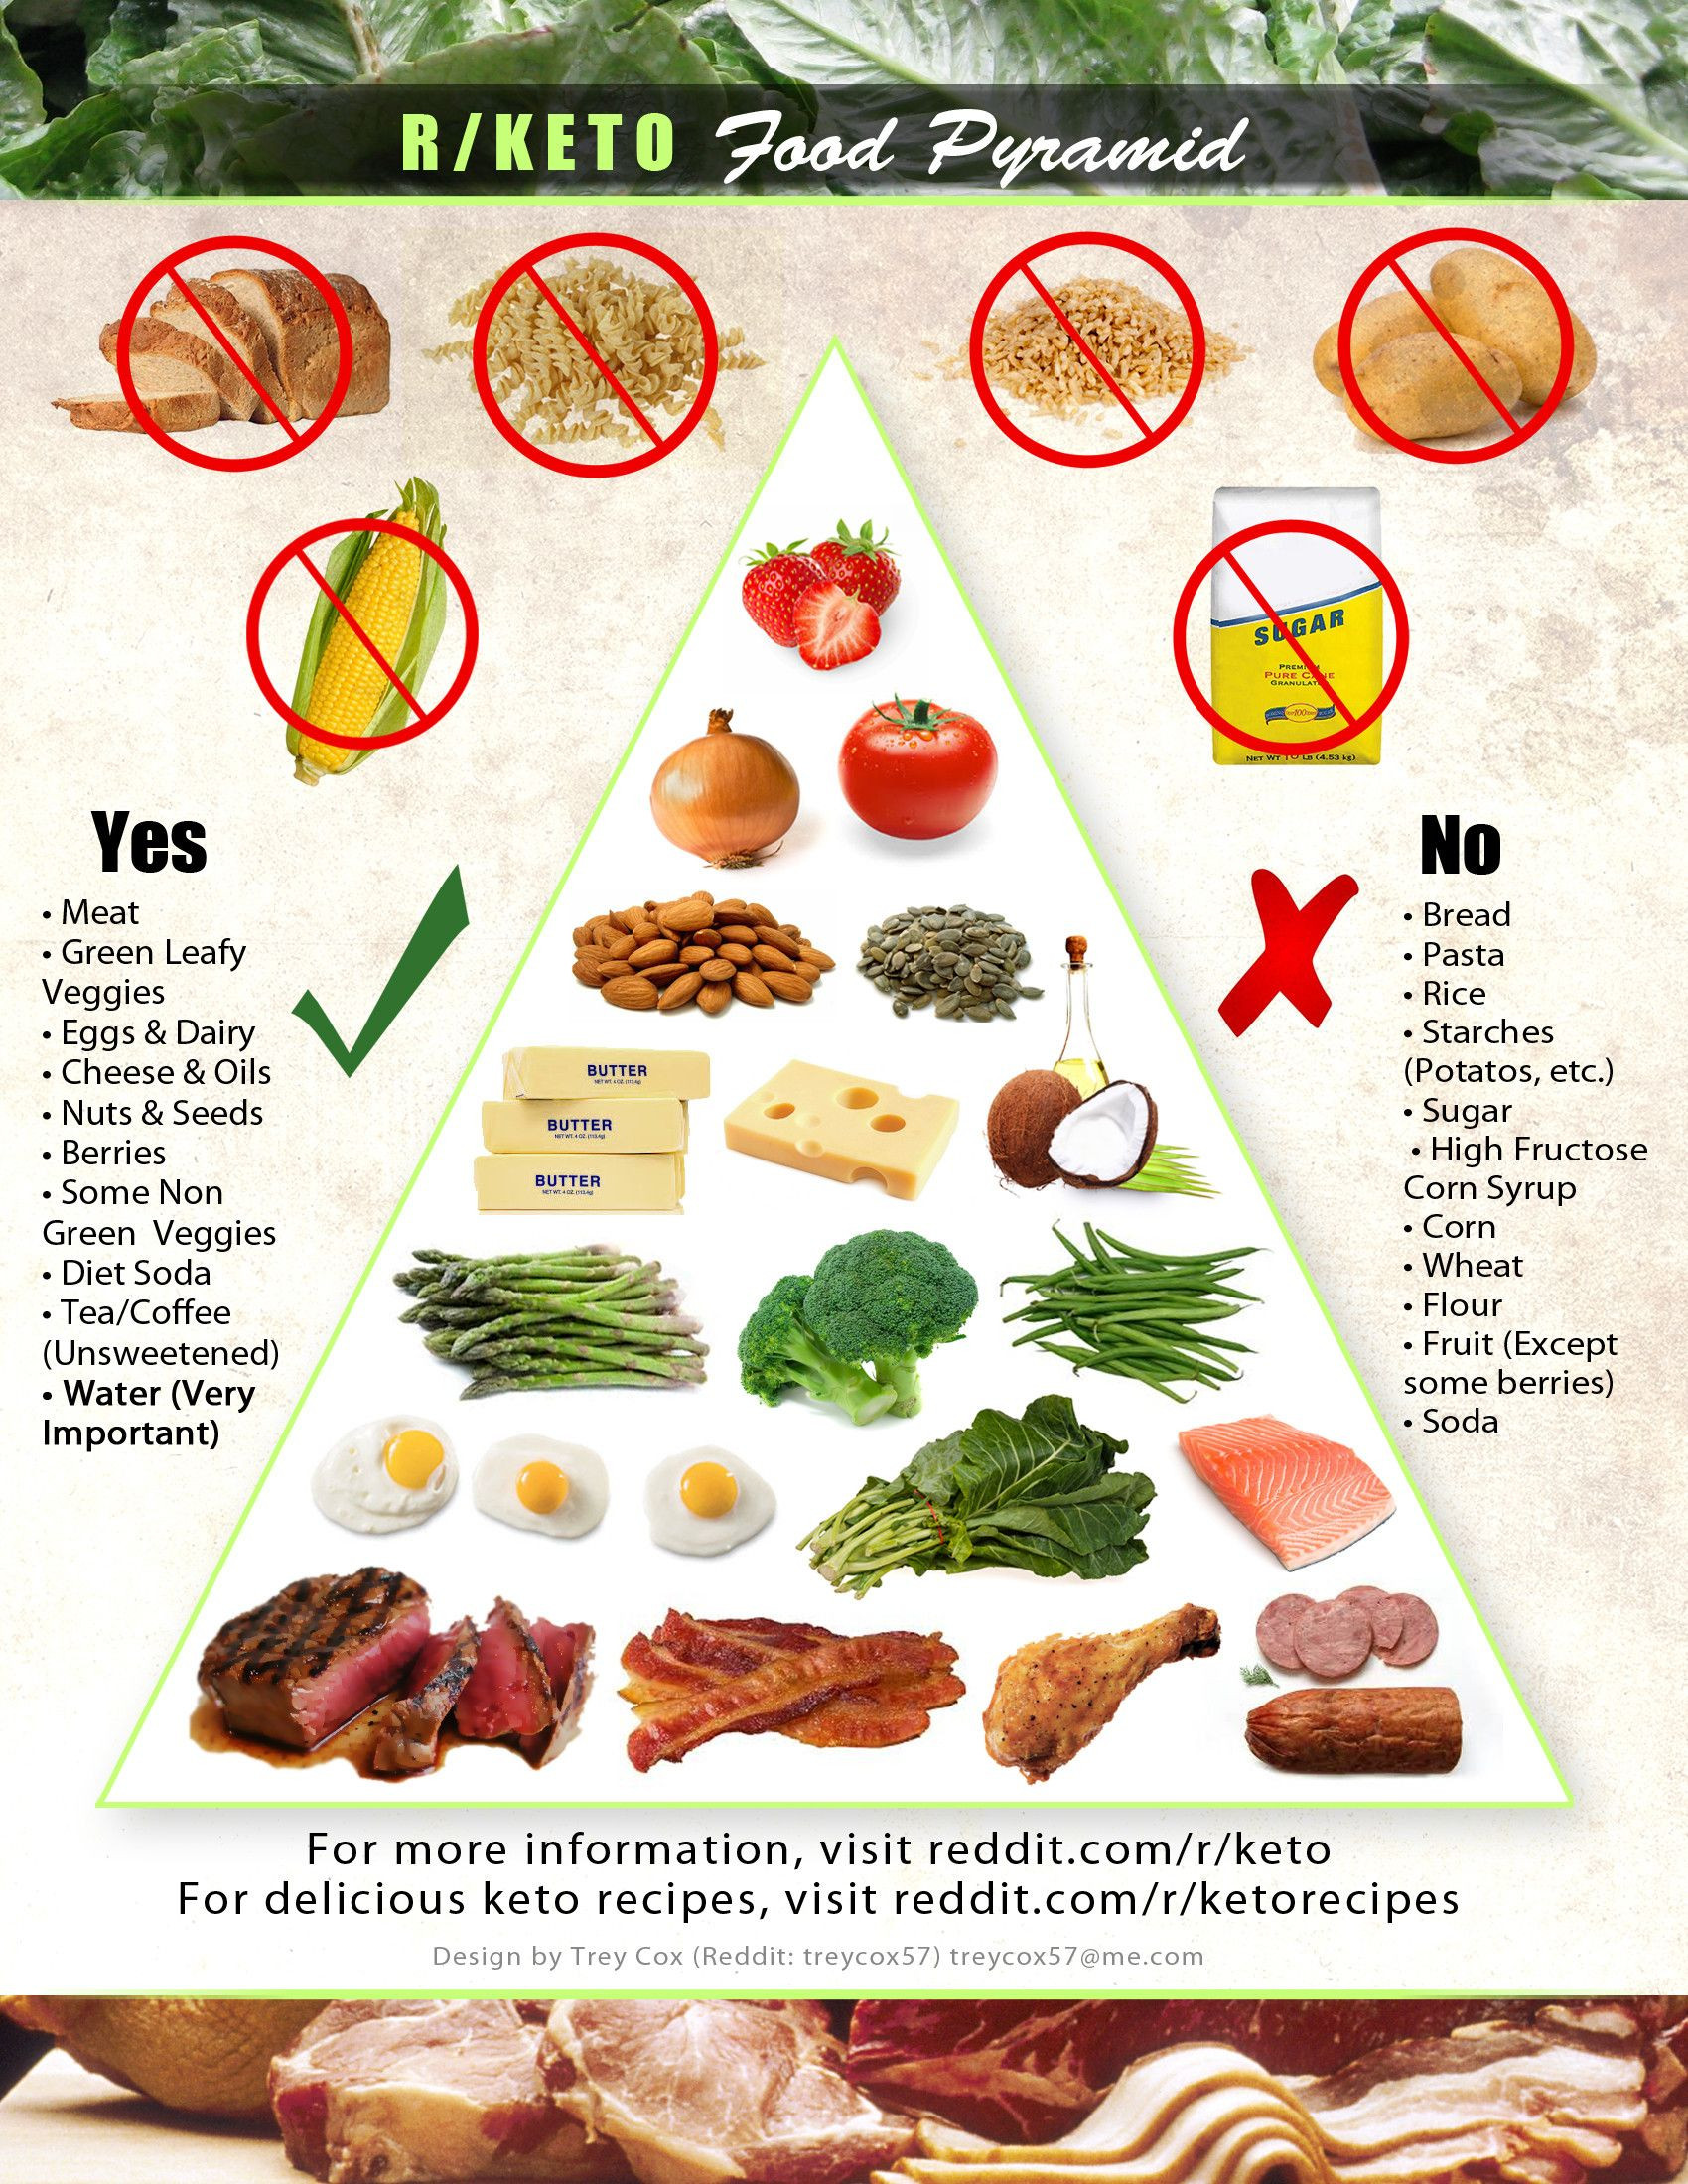 Is The Keto Diet Good For Diabetics The most awesome images on the Internet